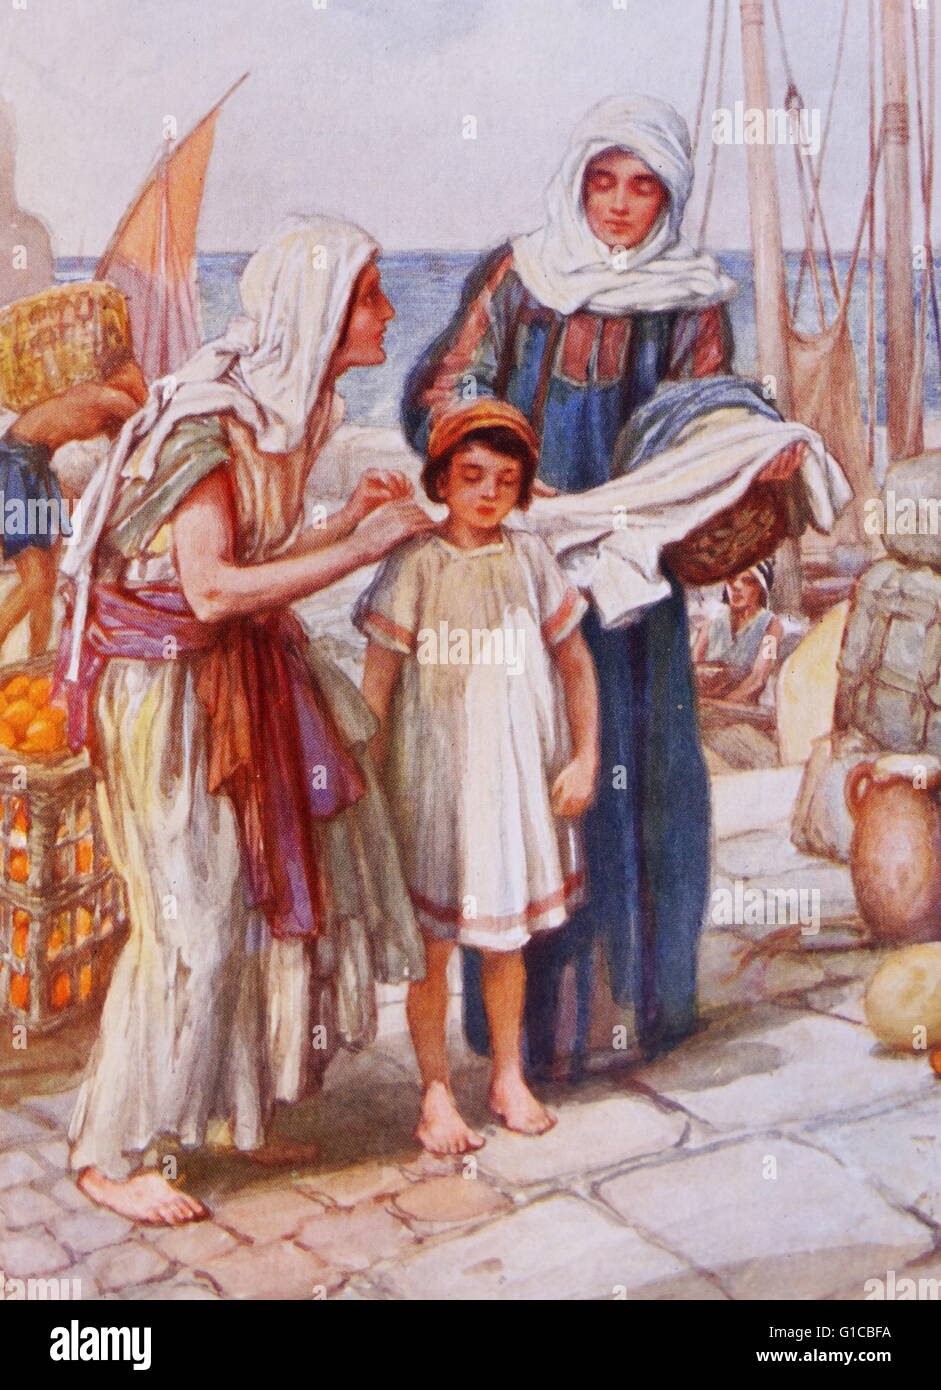 Painting depicting Dorcas giving help to a poor widow at Joppa - Stock Image